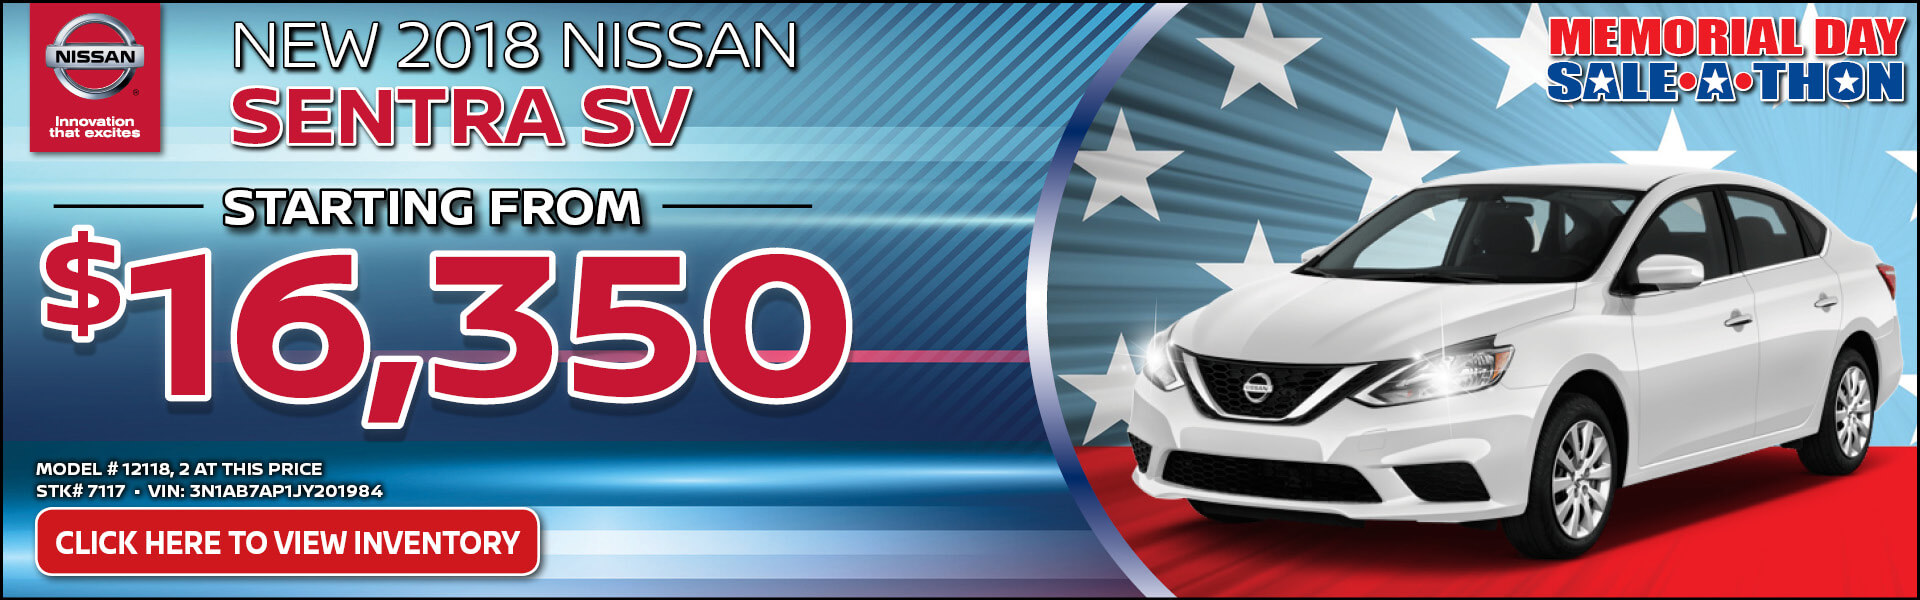 Nissan Sentra $16,350 Purchase